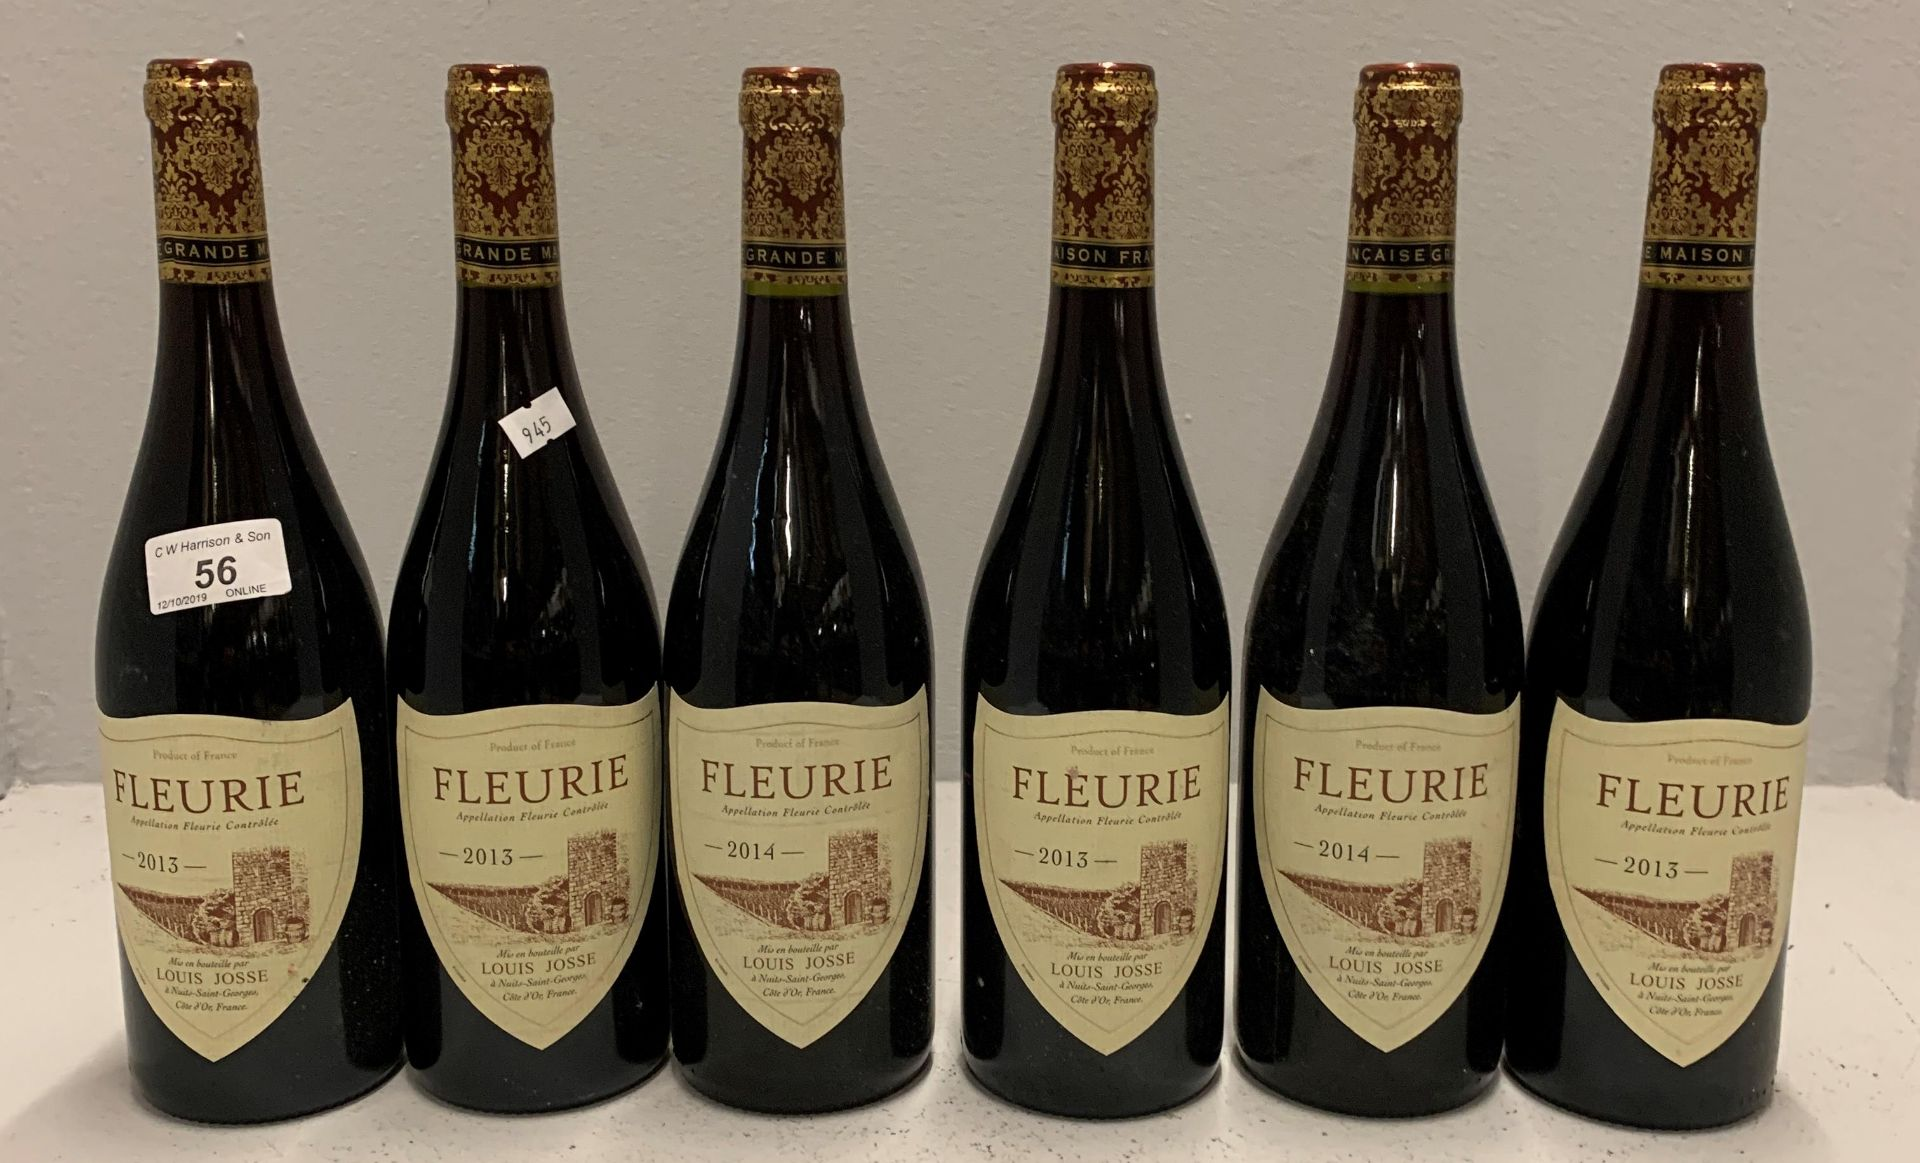 Lot 56 - 6 x 750ml bottles Louis Josse Fleurie